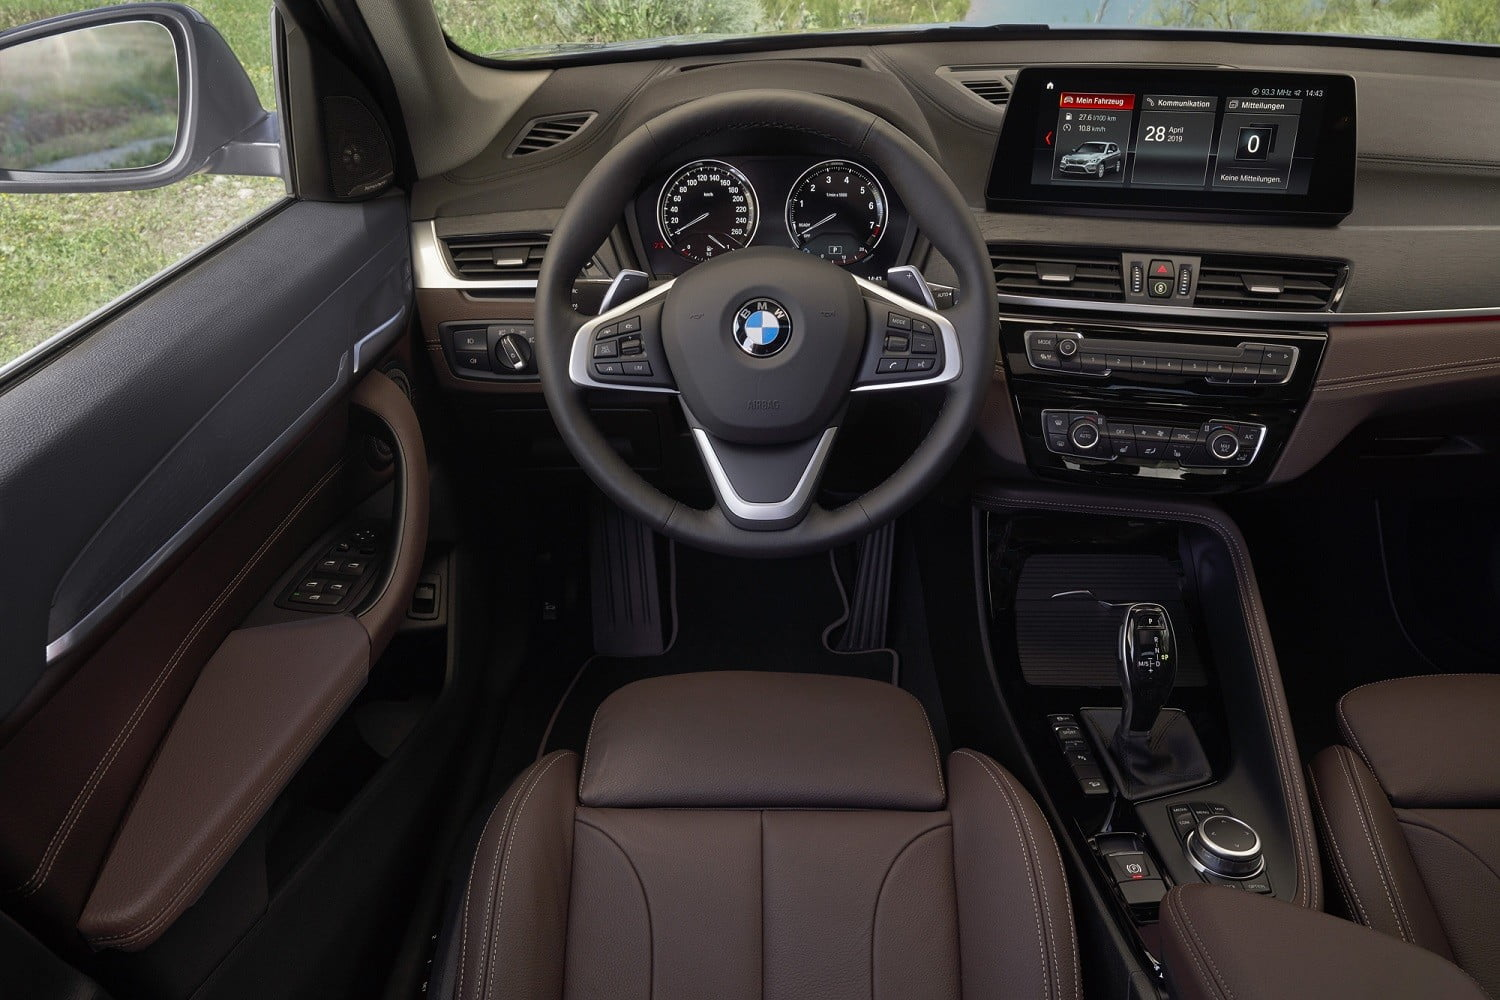 2020 bmw x1 gets new look front end interior upgrades official 7